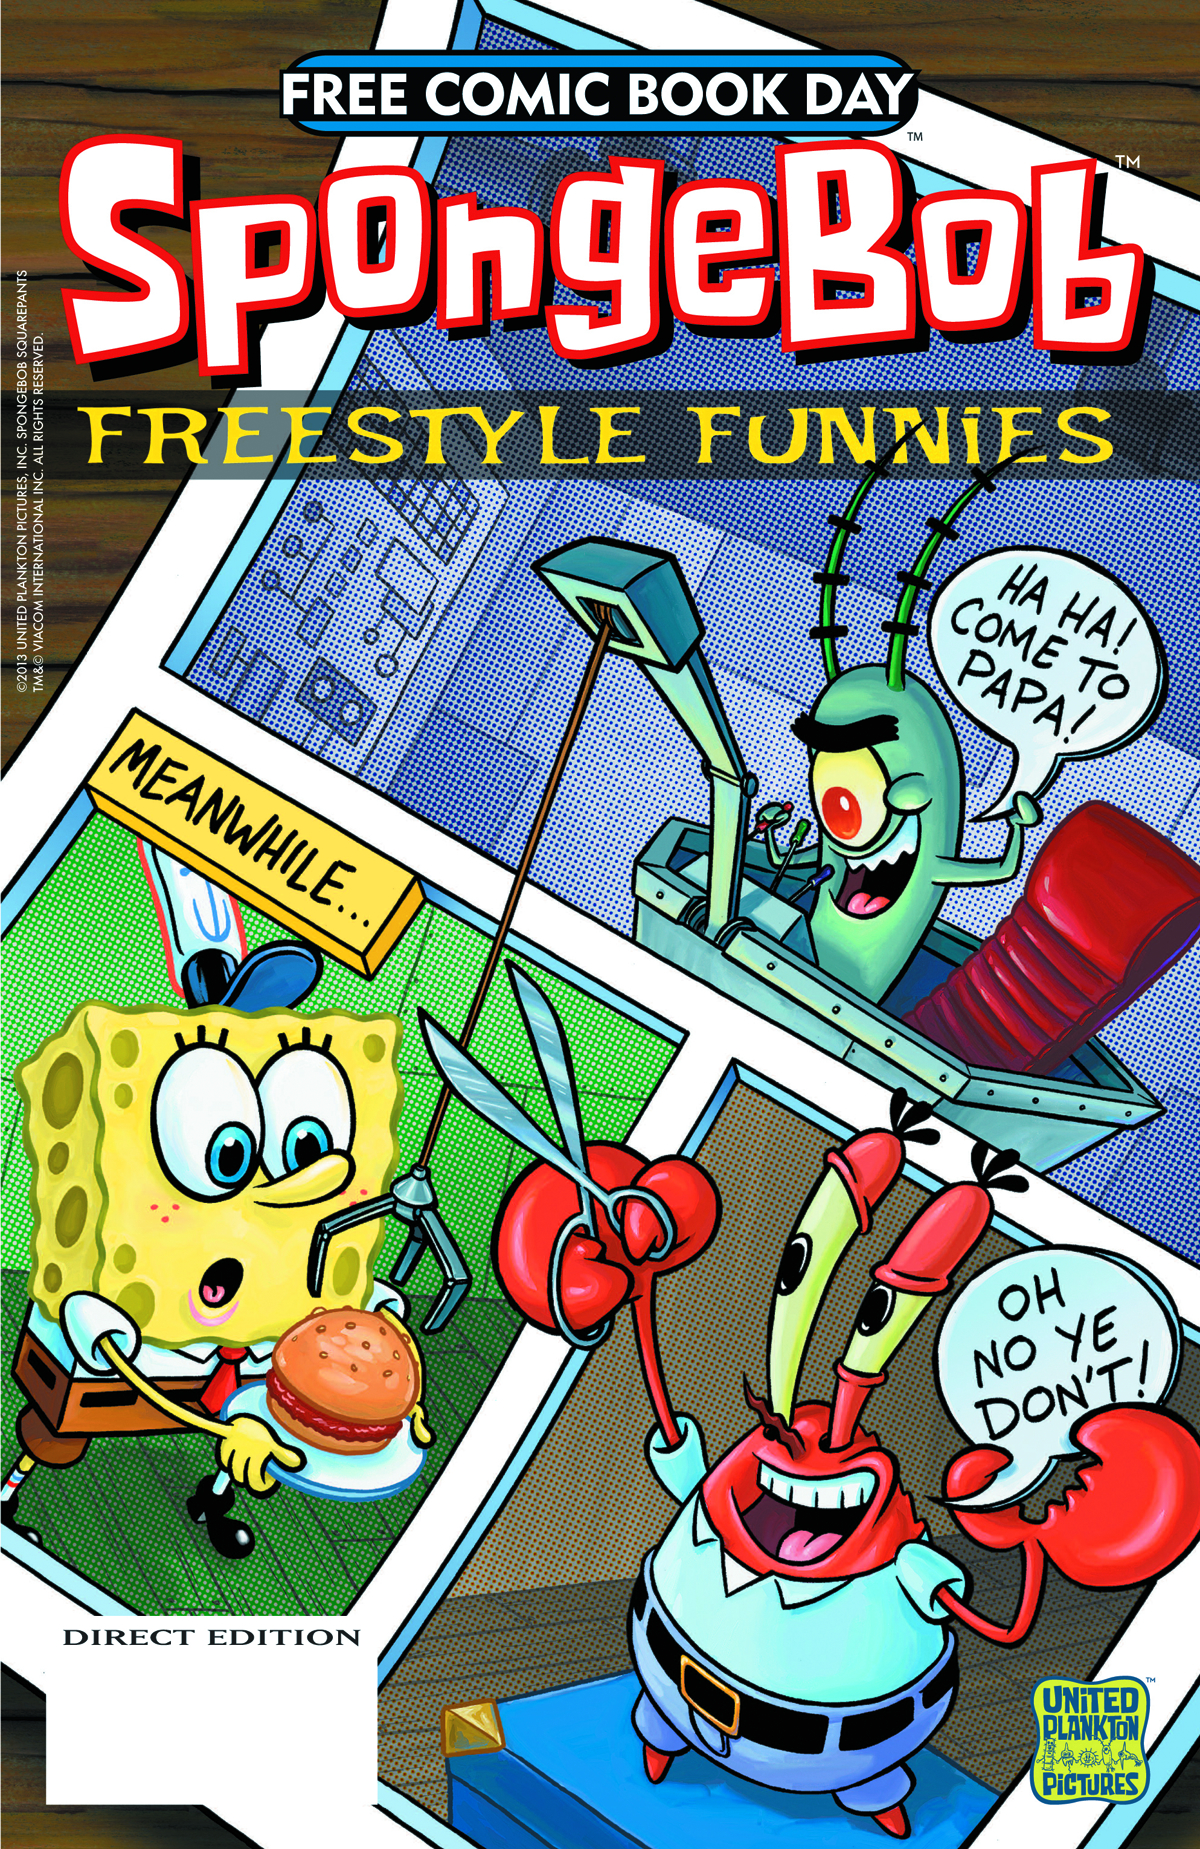 FCBD 2013 SPONGEBOB COMICS FREESTYLE FUNNIES